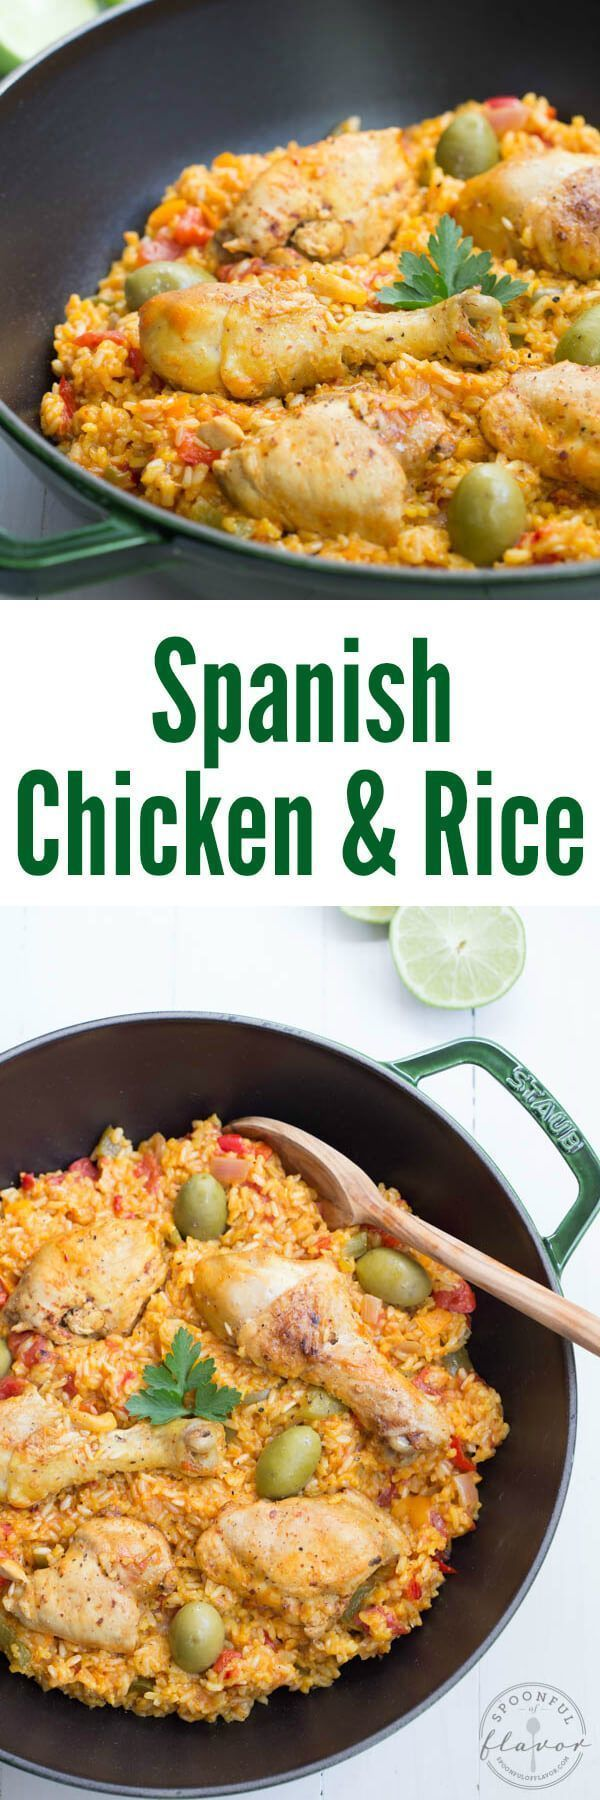 Spanish Chicken and Rice - a one pot meal with fresh ingredients and spices! Arroz Con Pollo is perfect for the entire family!